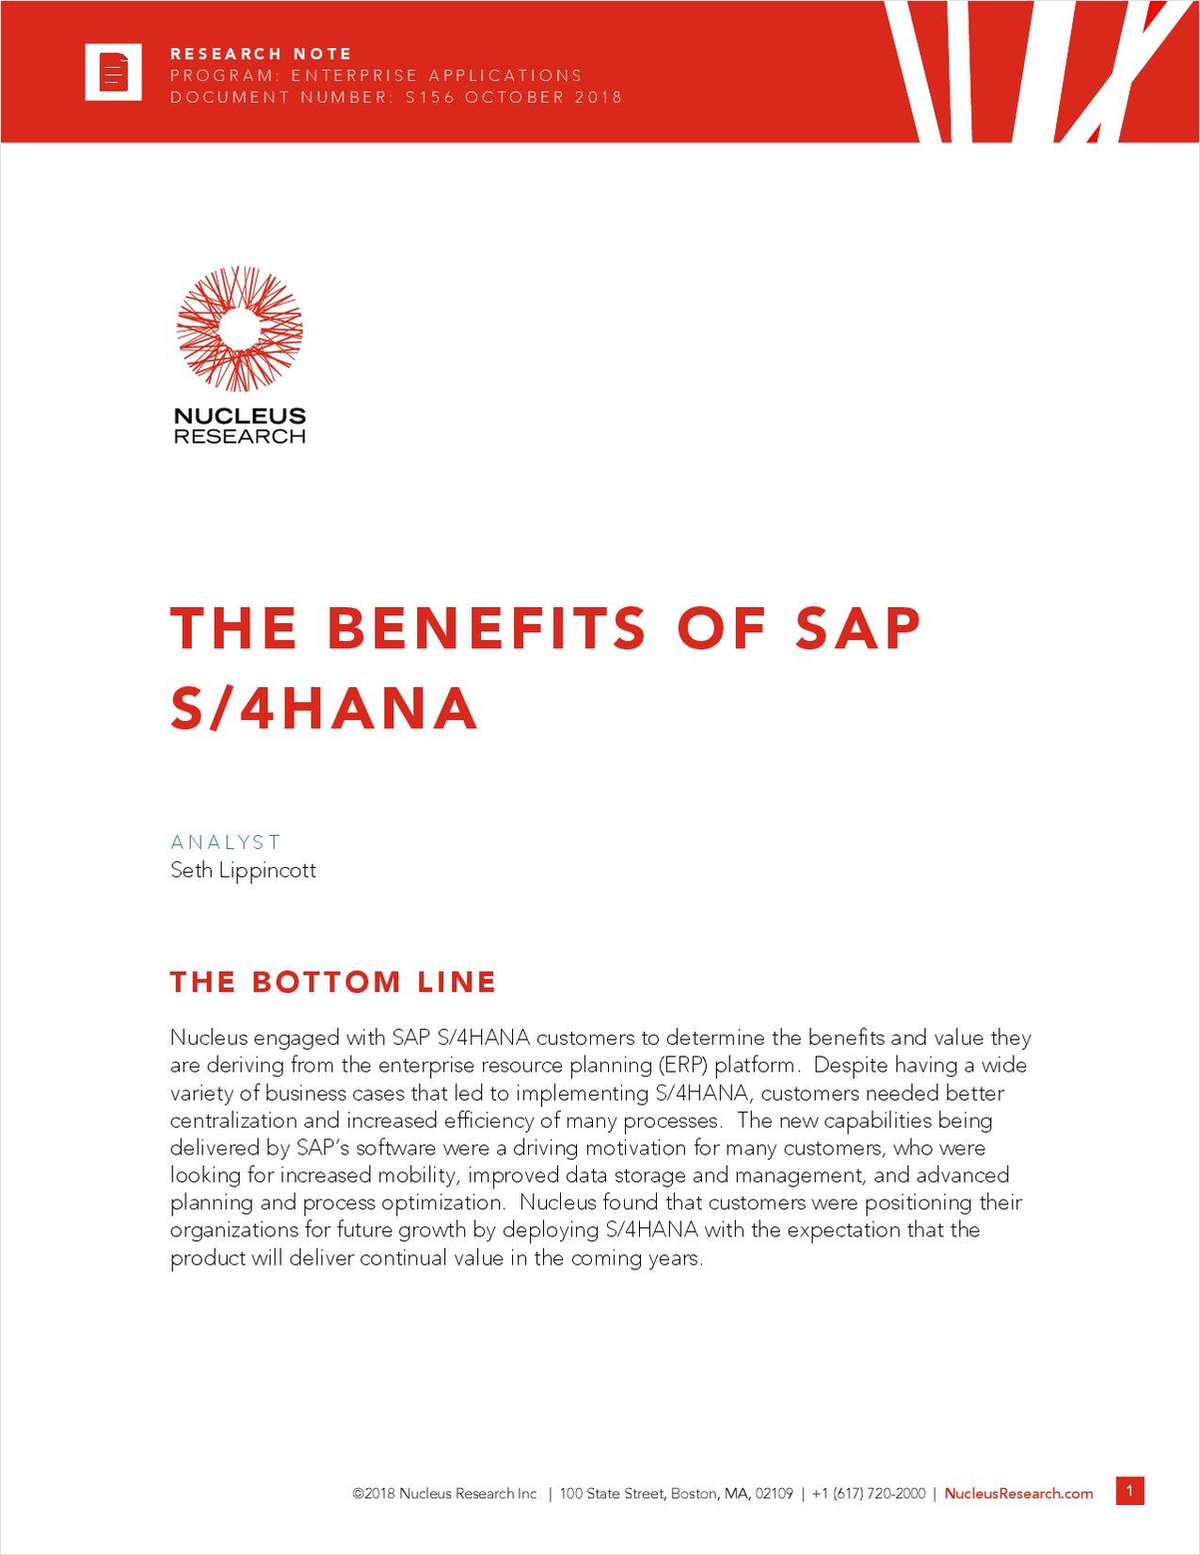 Nucleus Research: The Benefits of SAP S/4HANA